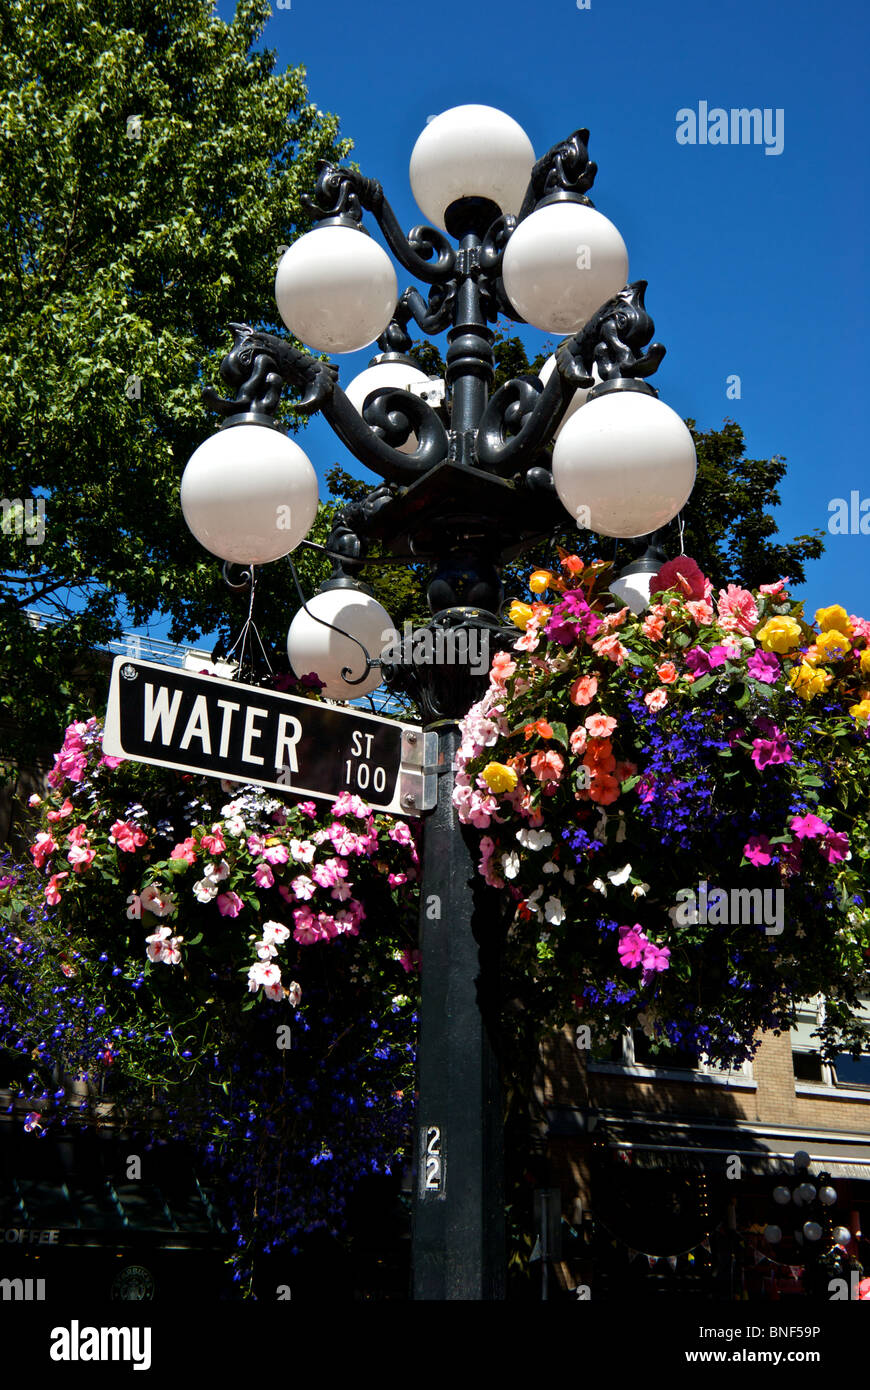 Flower Flowers Lamp Post Stock Photos Flower Flowers Lamp Post